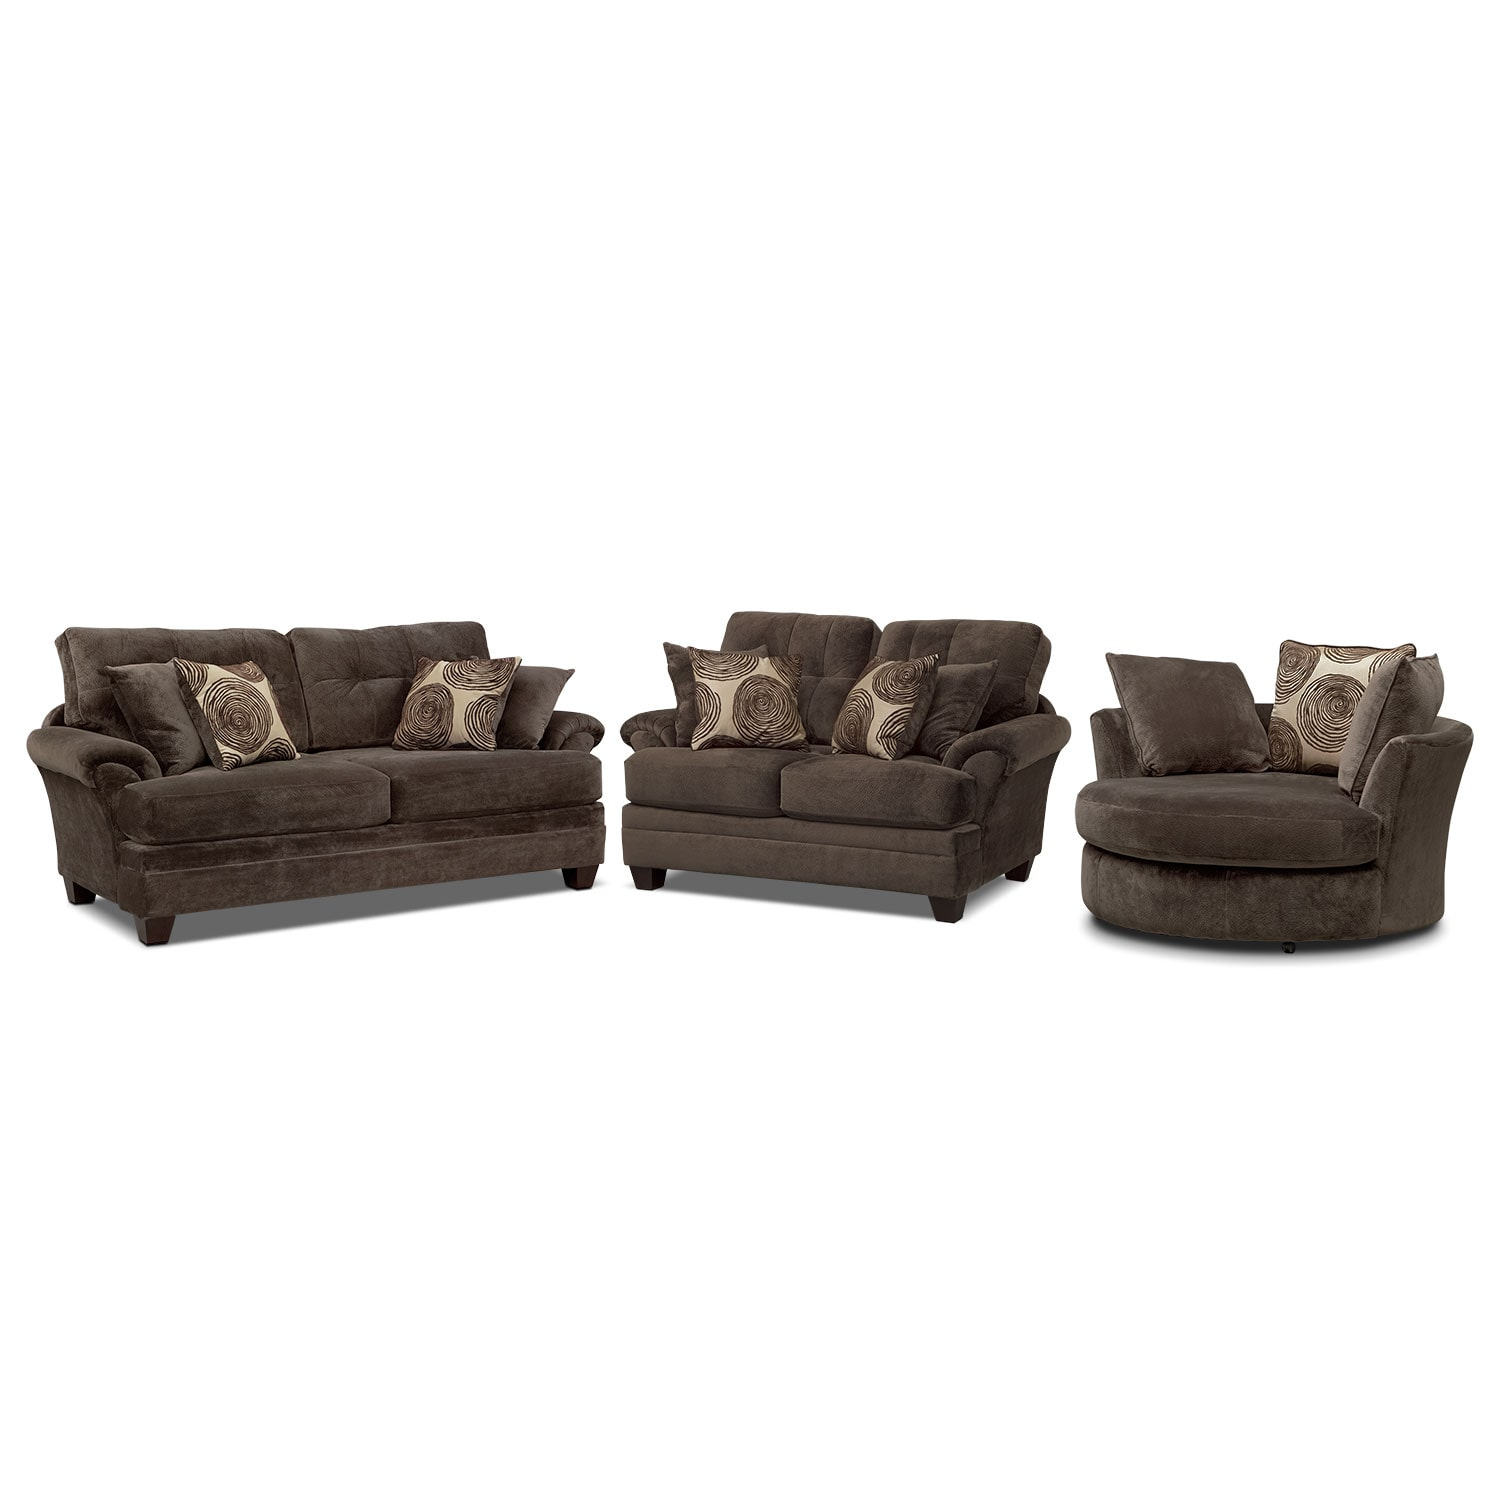 Living Room Furniture - Cordelle Sofa, Loveseat and Swivel Chair Set - Chocolate